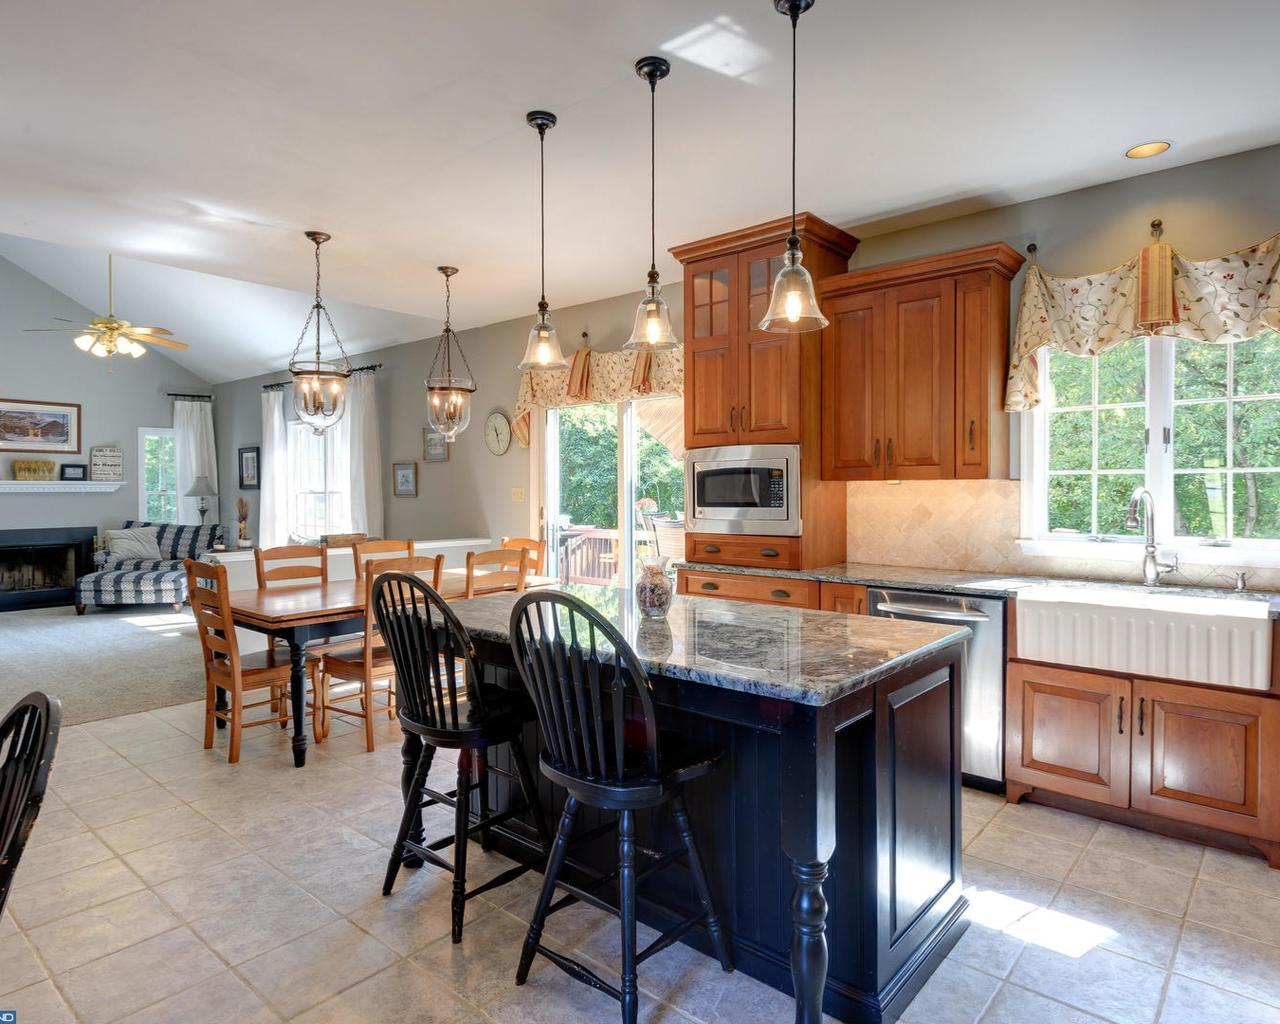 1372 Steeple Chase Rd, Downingtown, PA (25 Photos) MLS# 7053358   Movoto